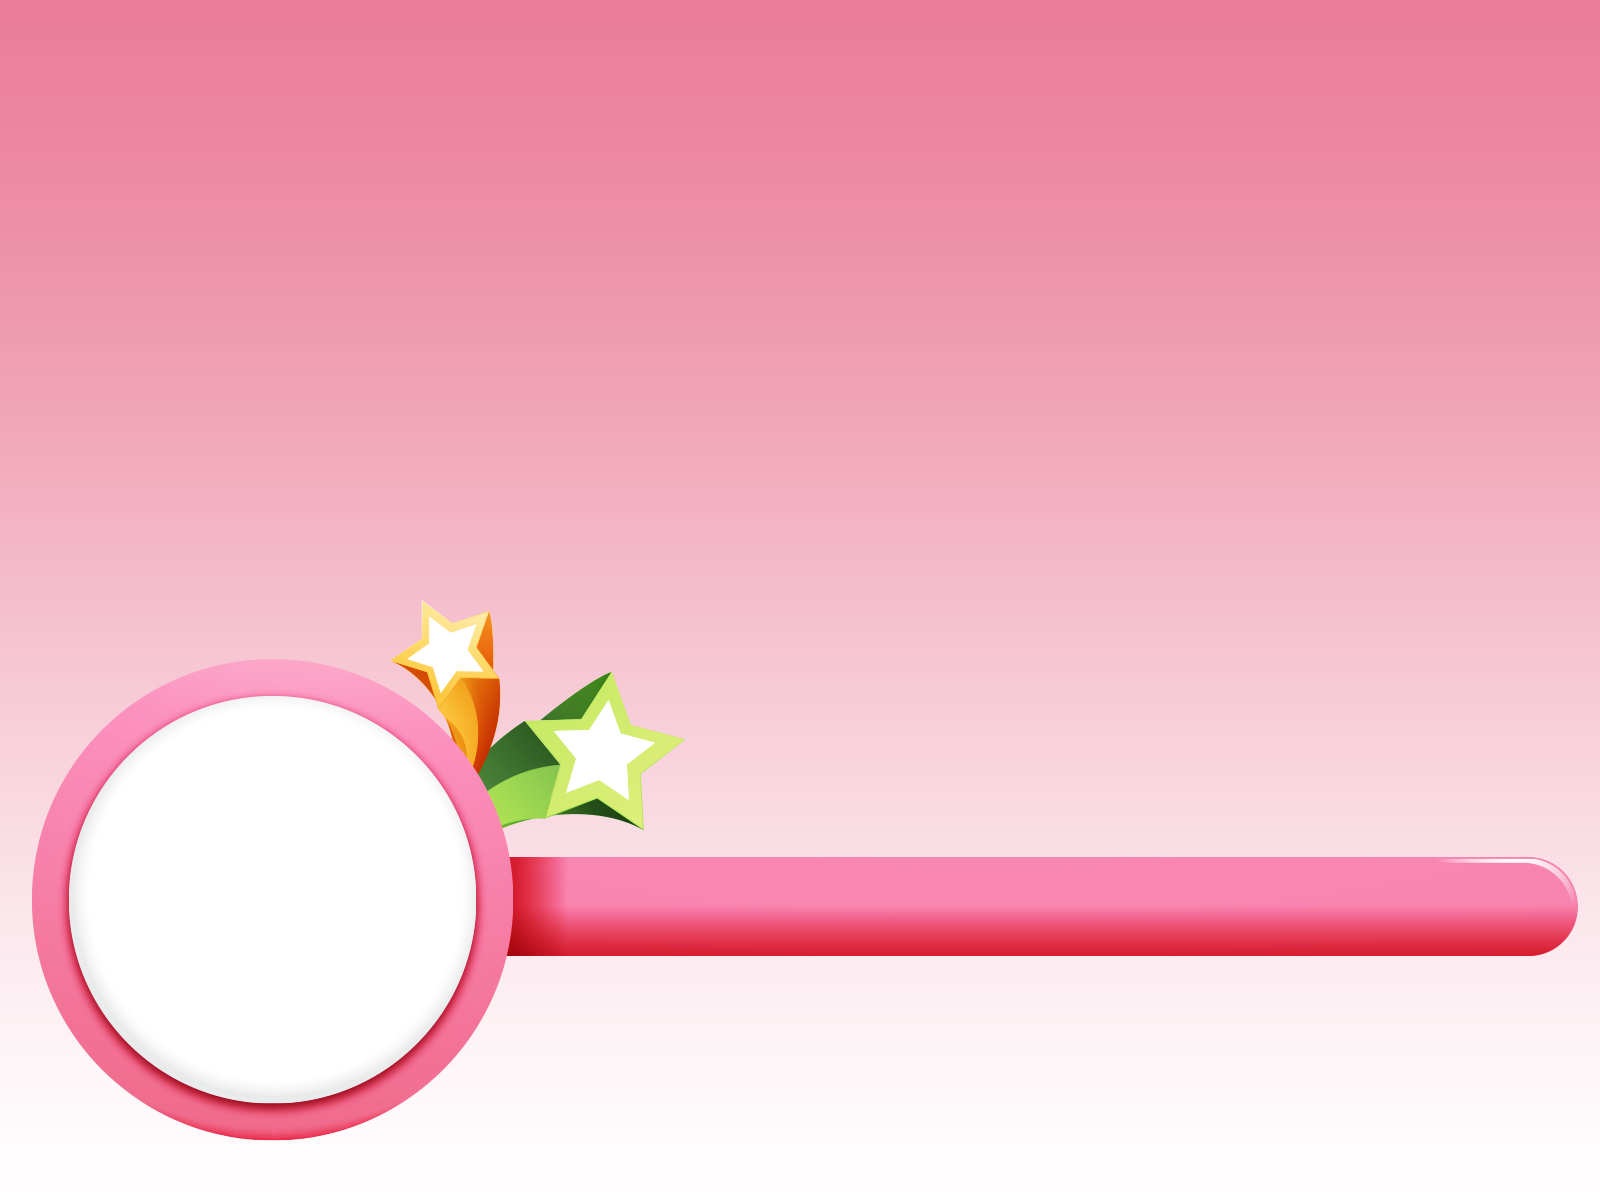 free slide templates - pink professional backgrounds cartoon powerpoint